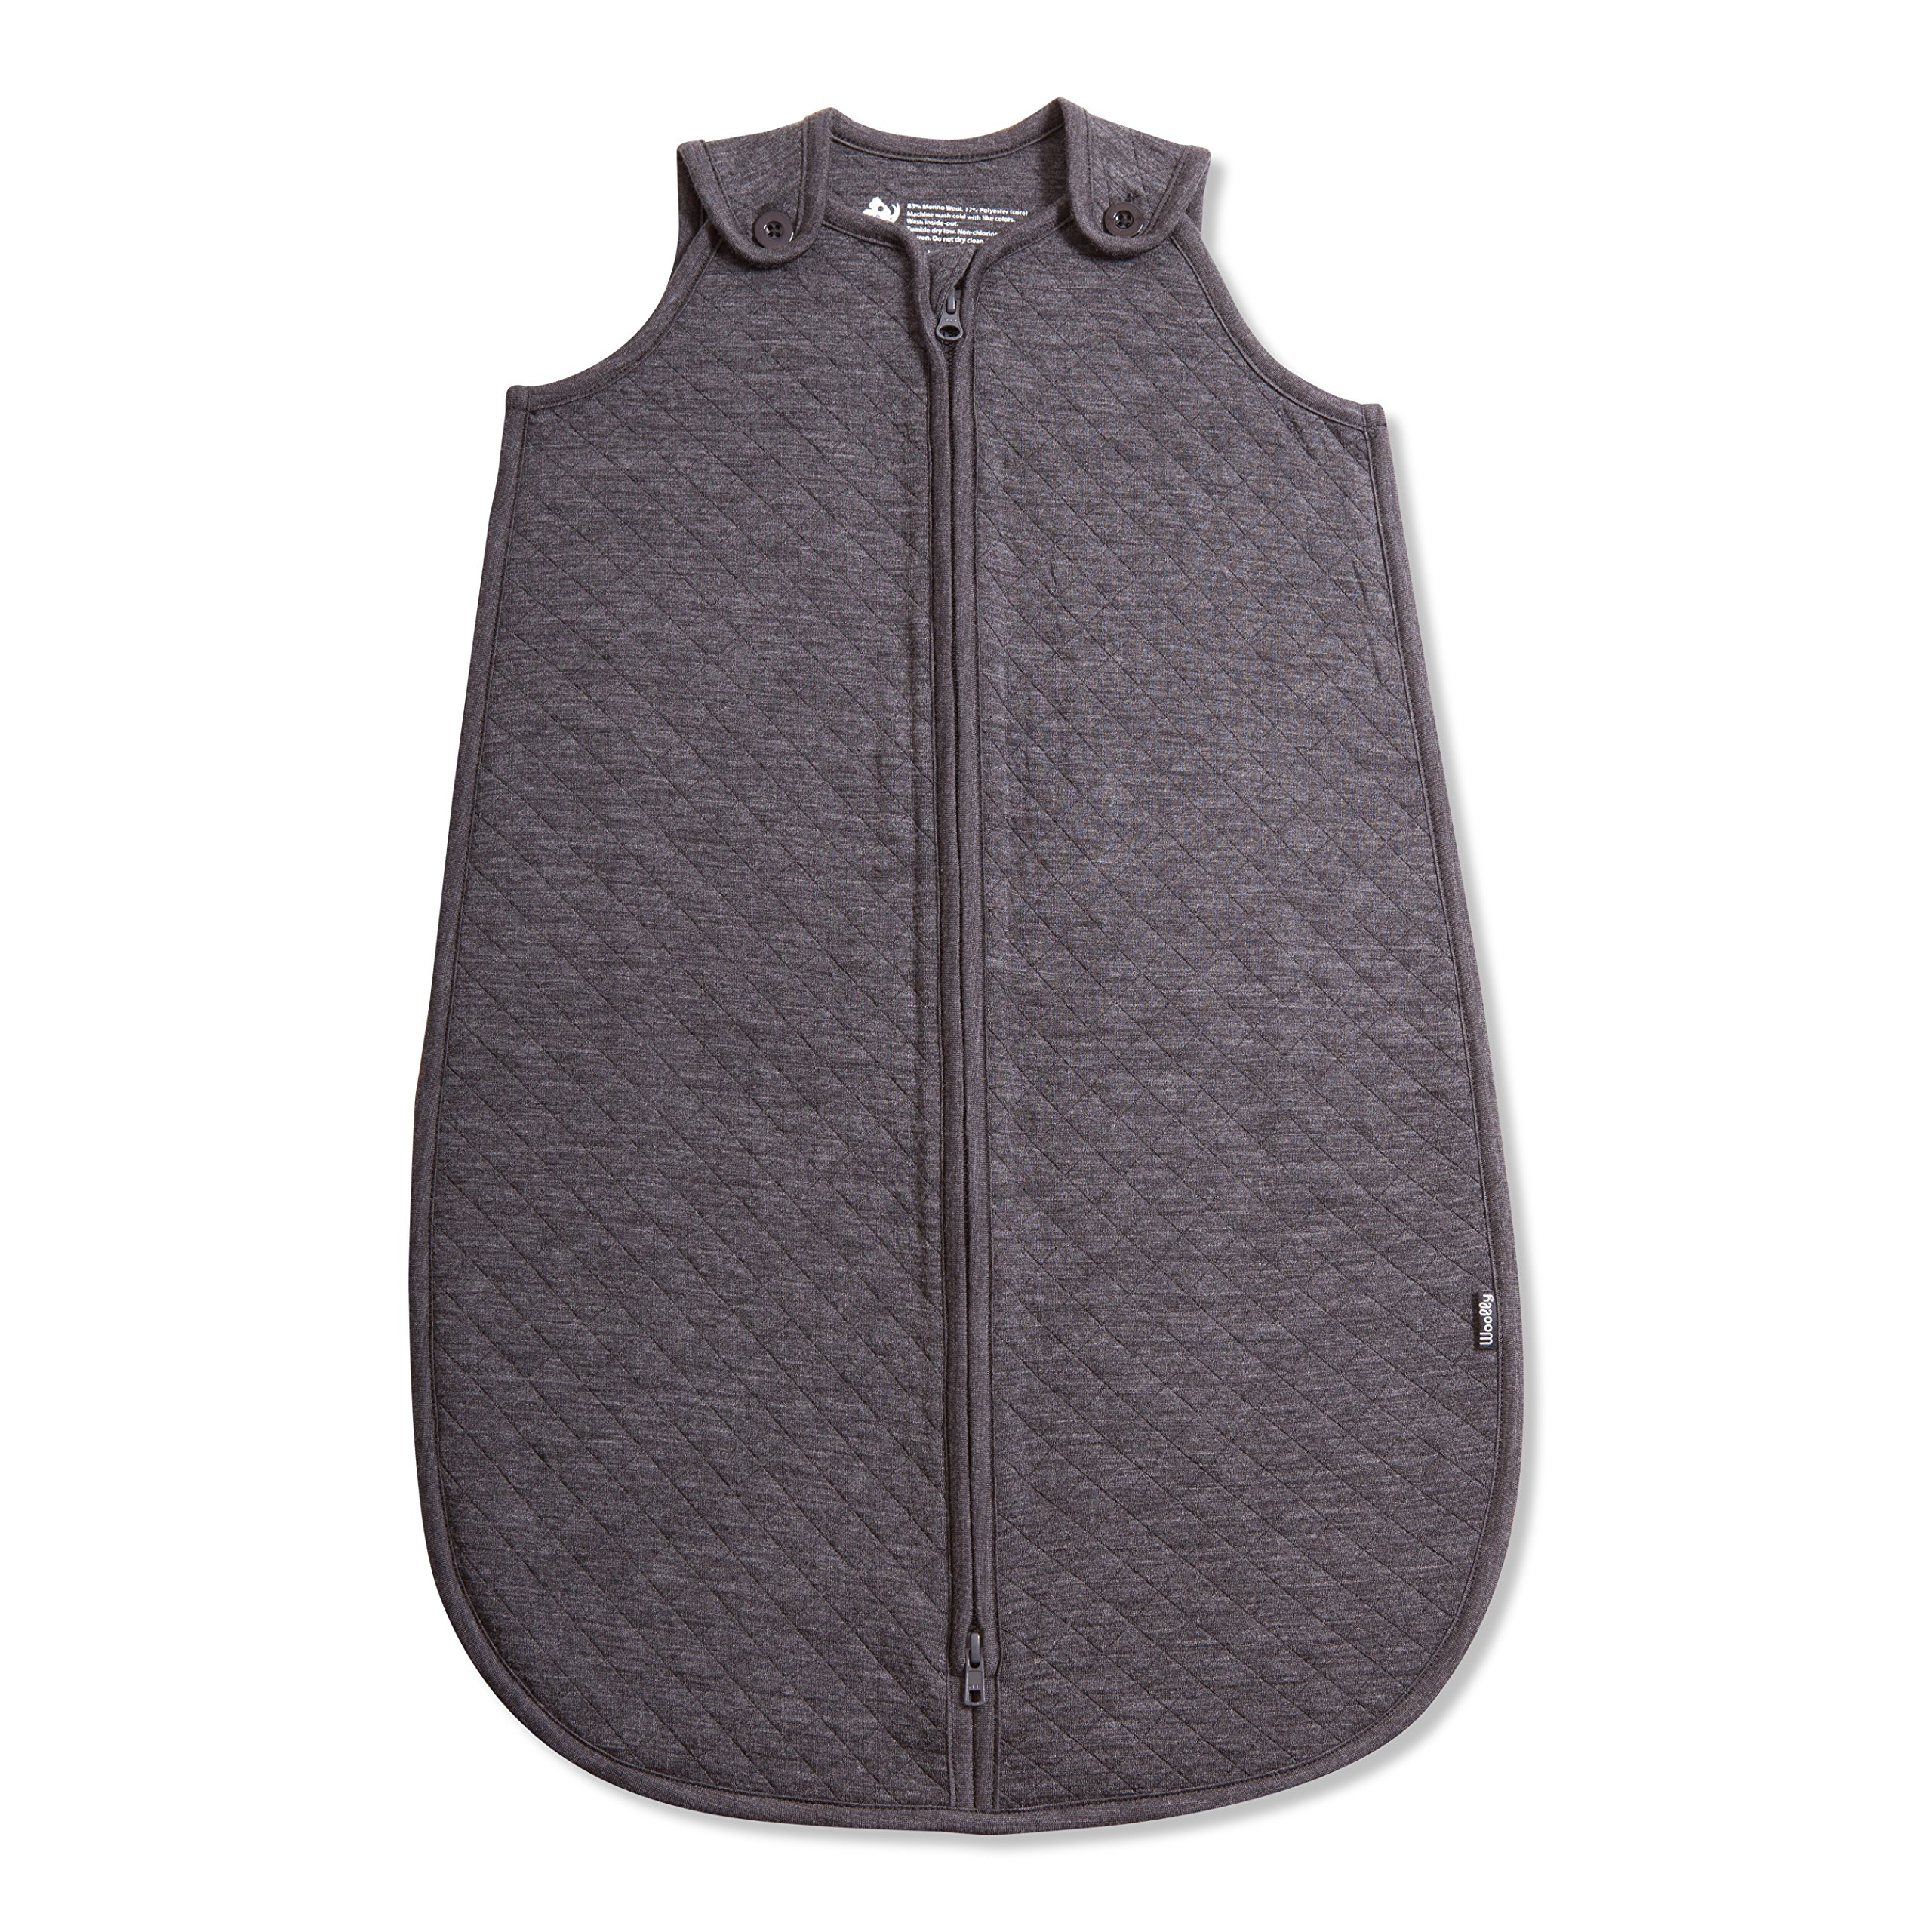 Woolly Clothing Co Merino Wool Quilted Infant Sleep Sack (310 GSM) Charcoal 18+ Months